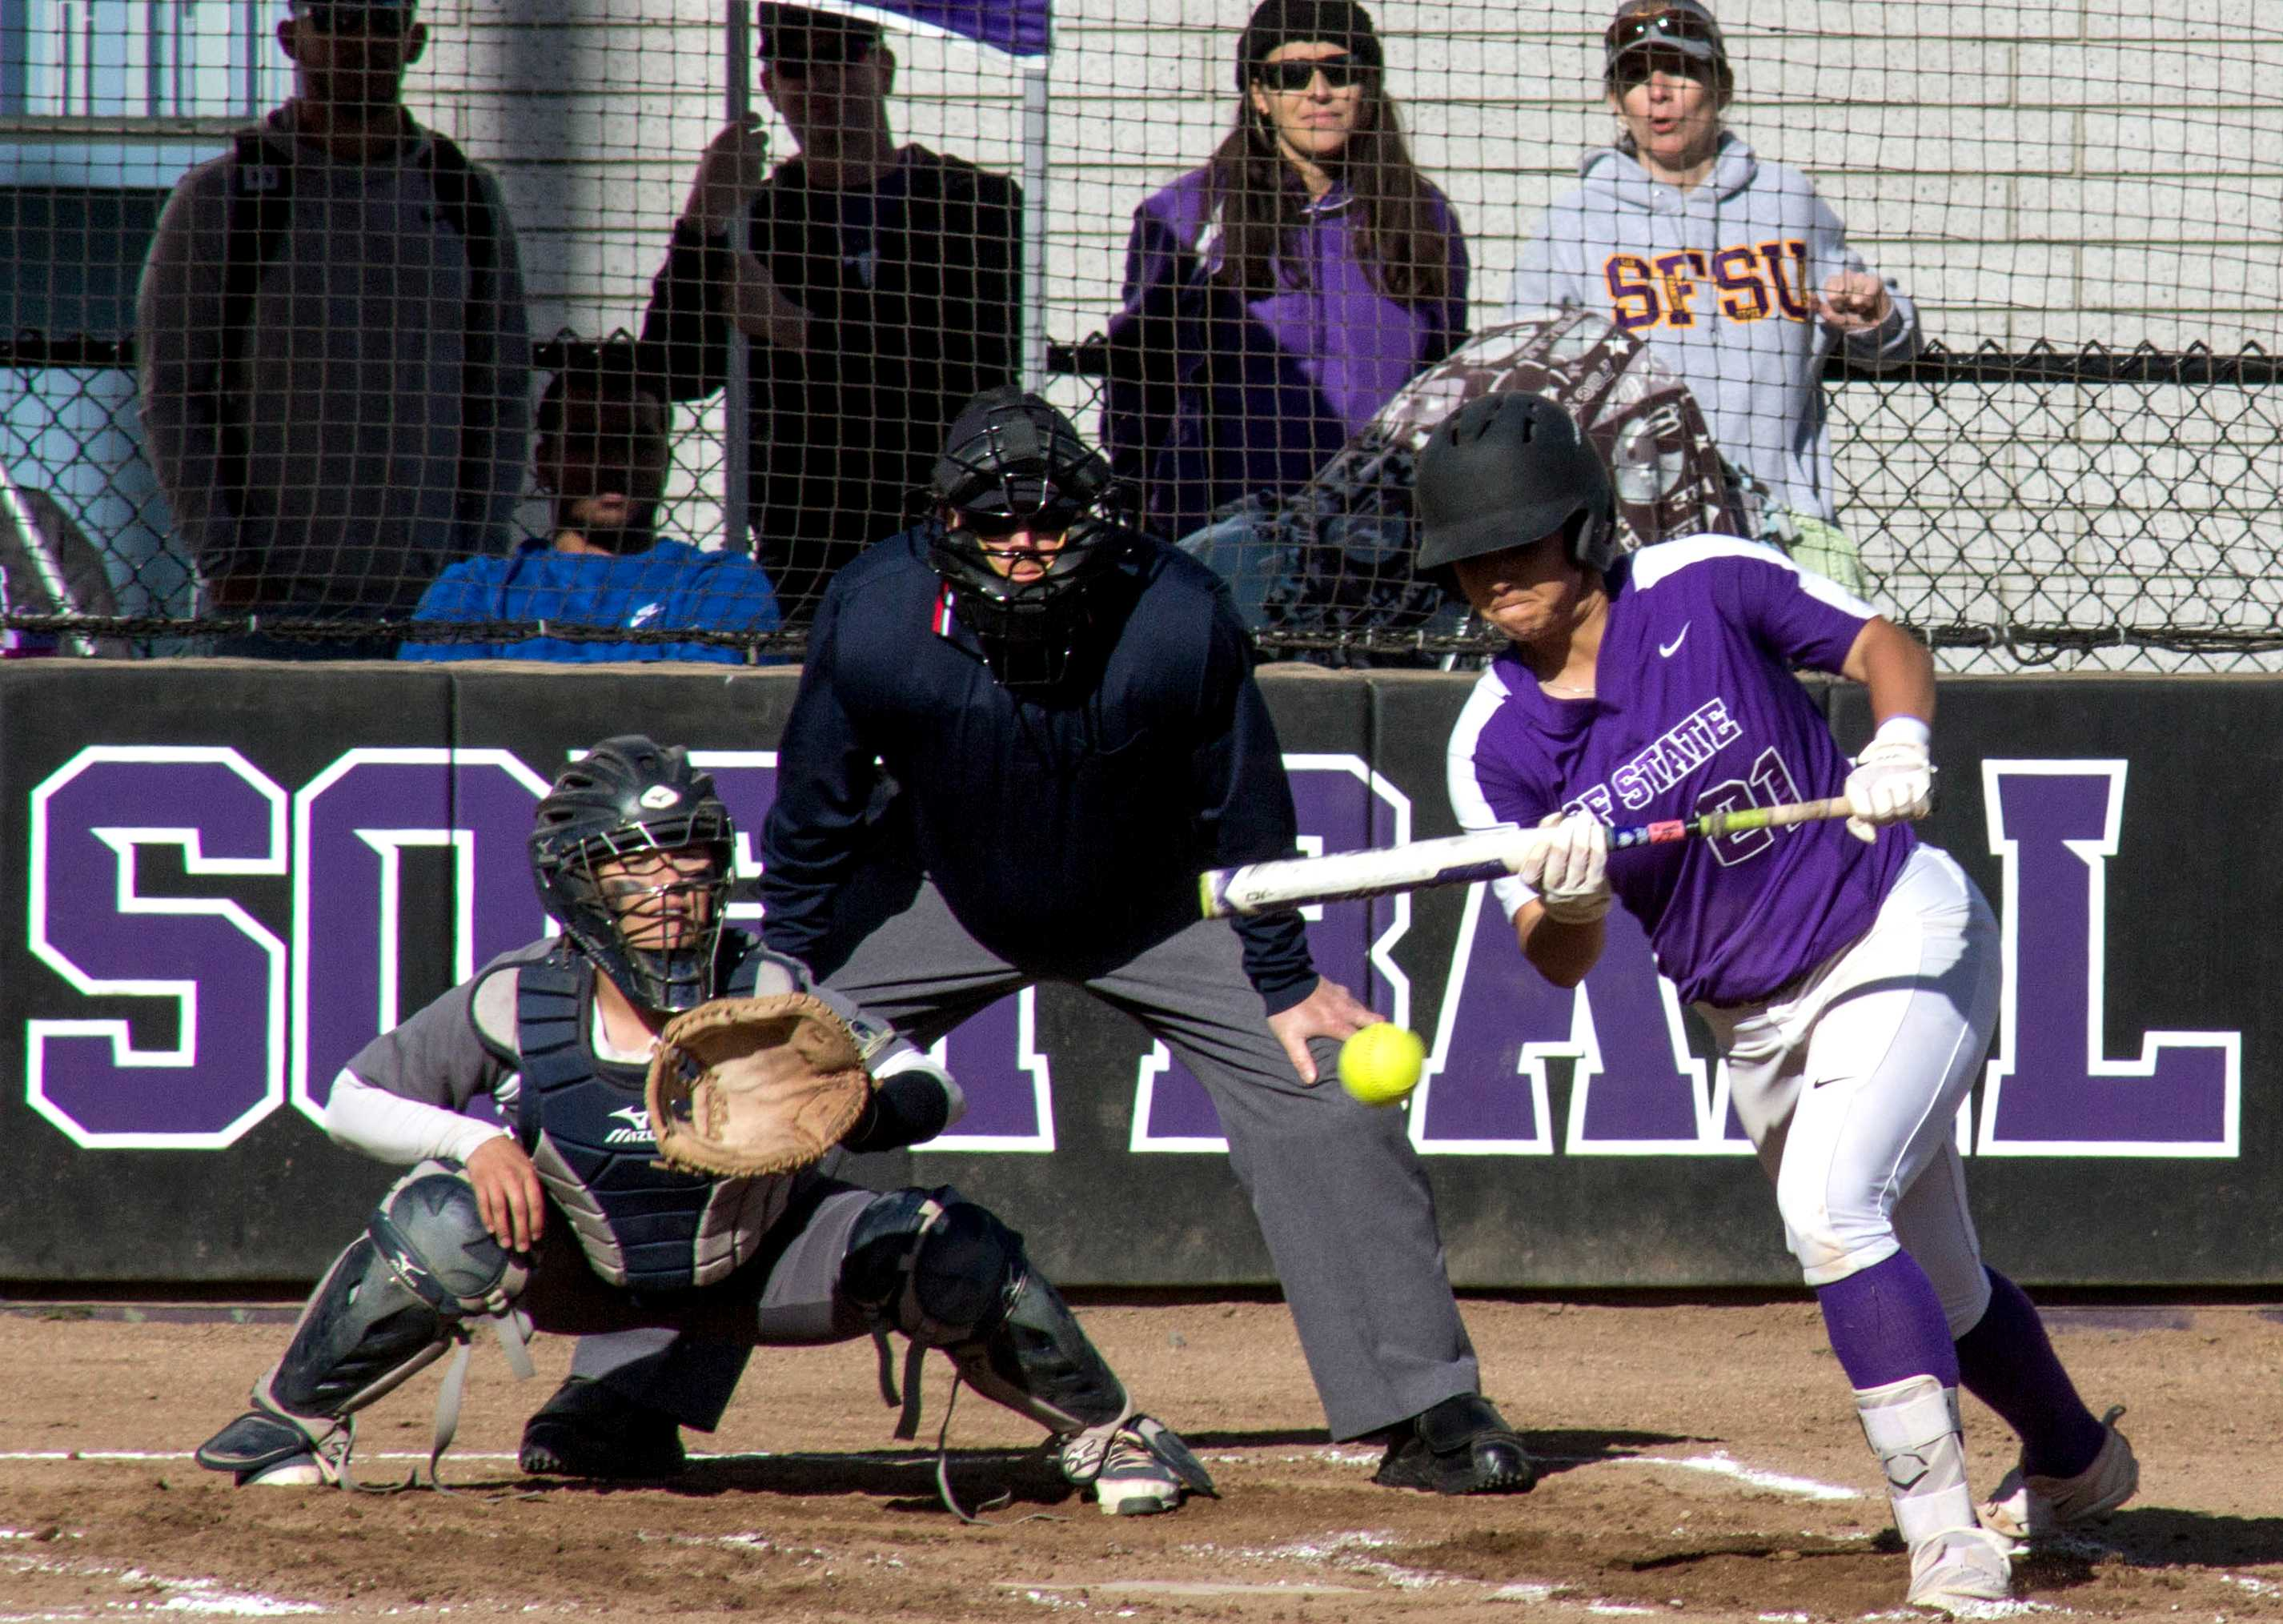 SF State wins doubleheader 6-1, 7-0